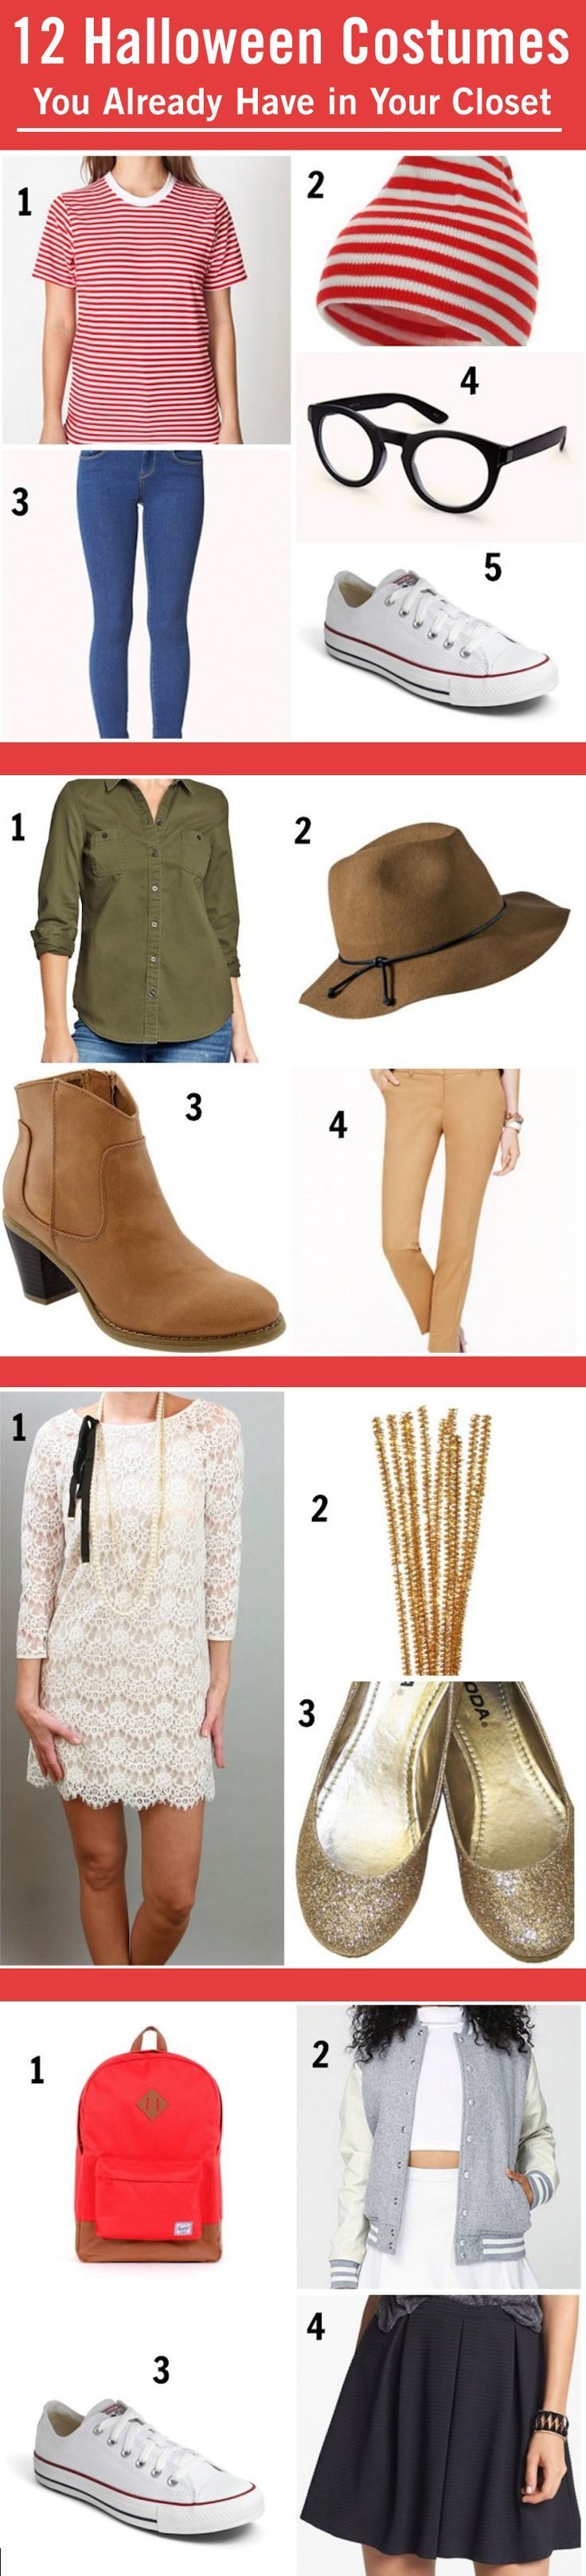 12 Halloween Costumes You Already Have in Your Closet | Easy diy ...